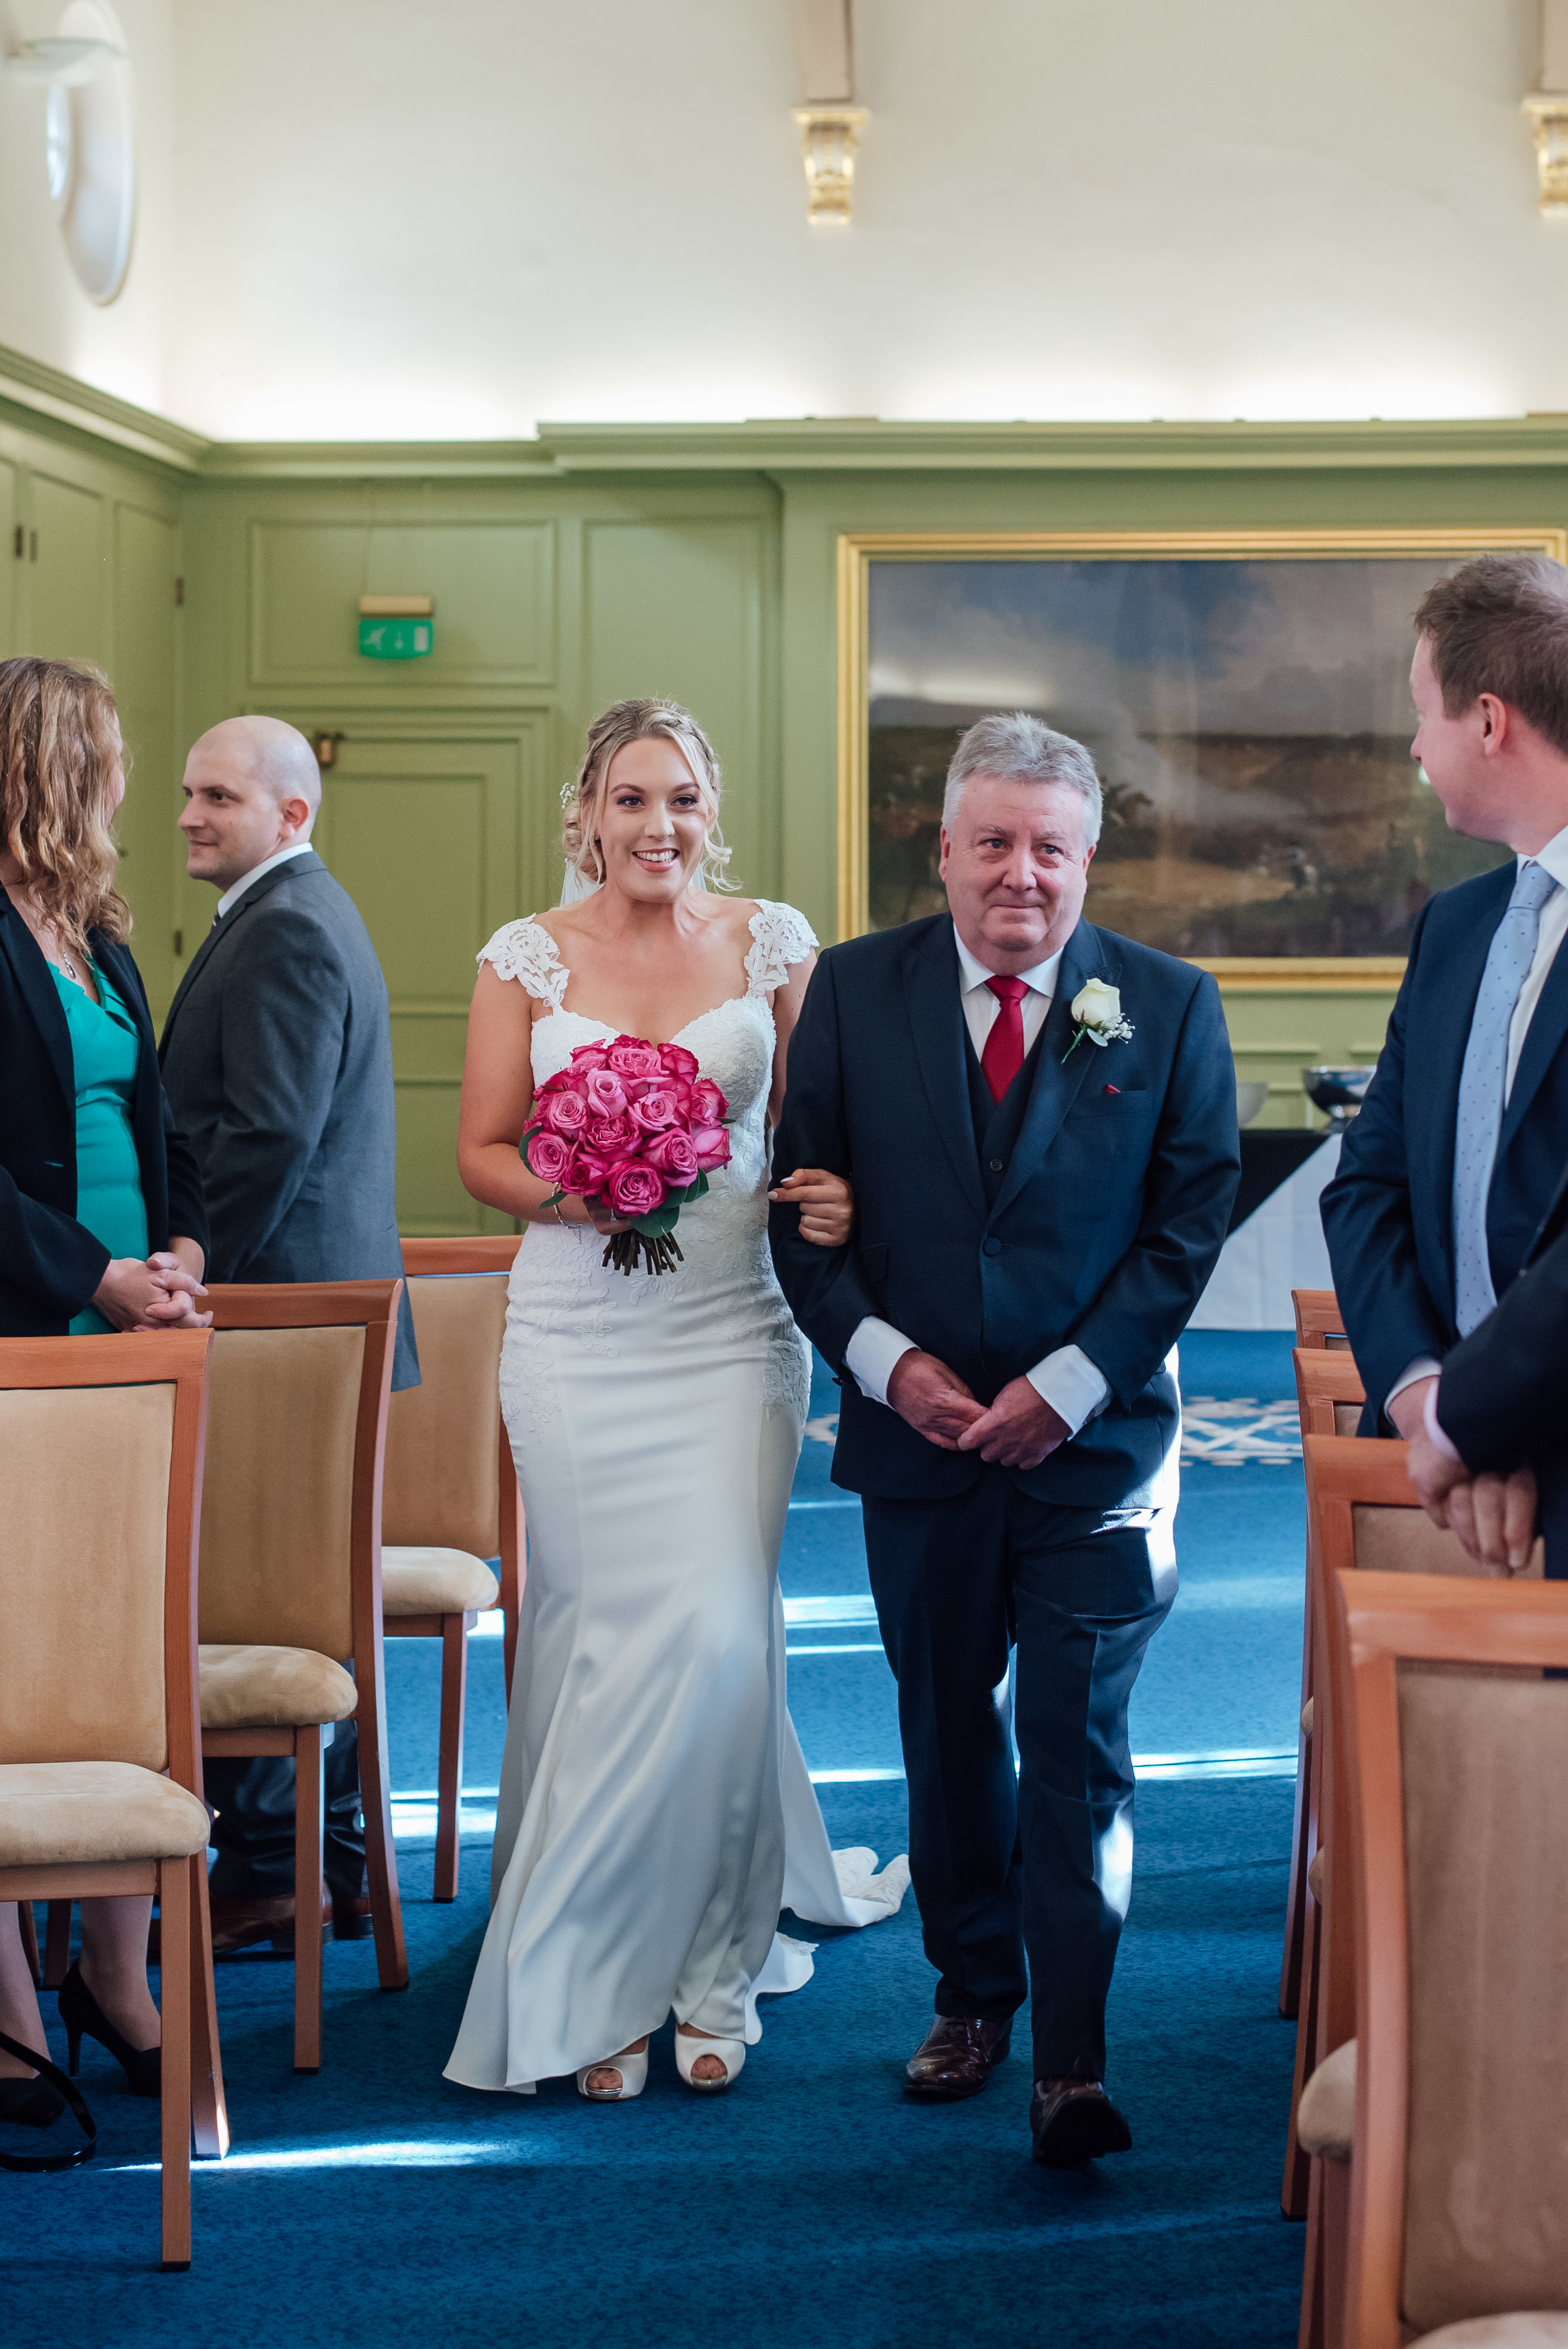 bride-walking down-aisle-with-her-father /Hampshire-wedding-photographer-hampshire / Amy-james-photography / fleet-wedding-photographer / fleet-photographer-farnborough / documentary-wedding-photographer / Hampshire-wedding-venue / wellington-college-wedding-berkshire